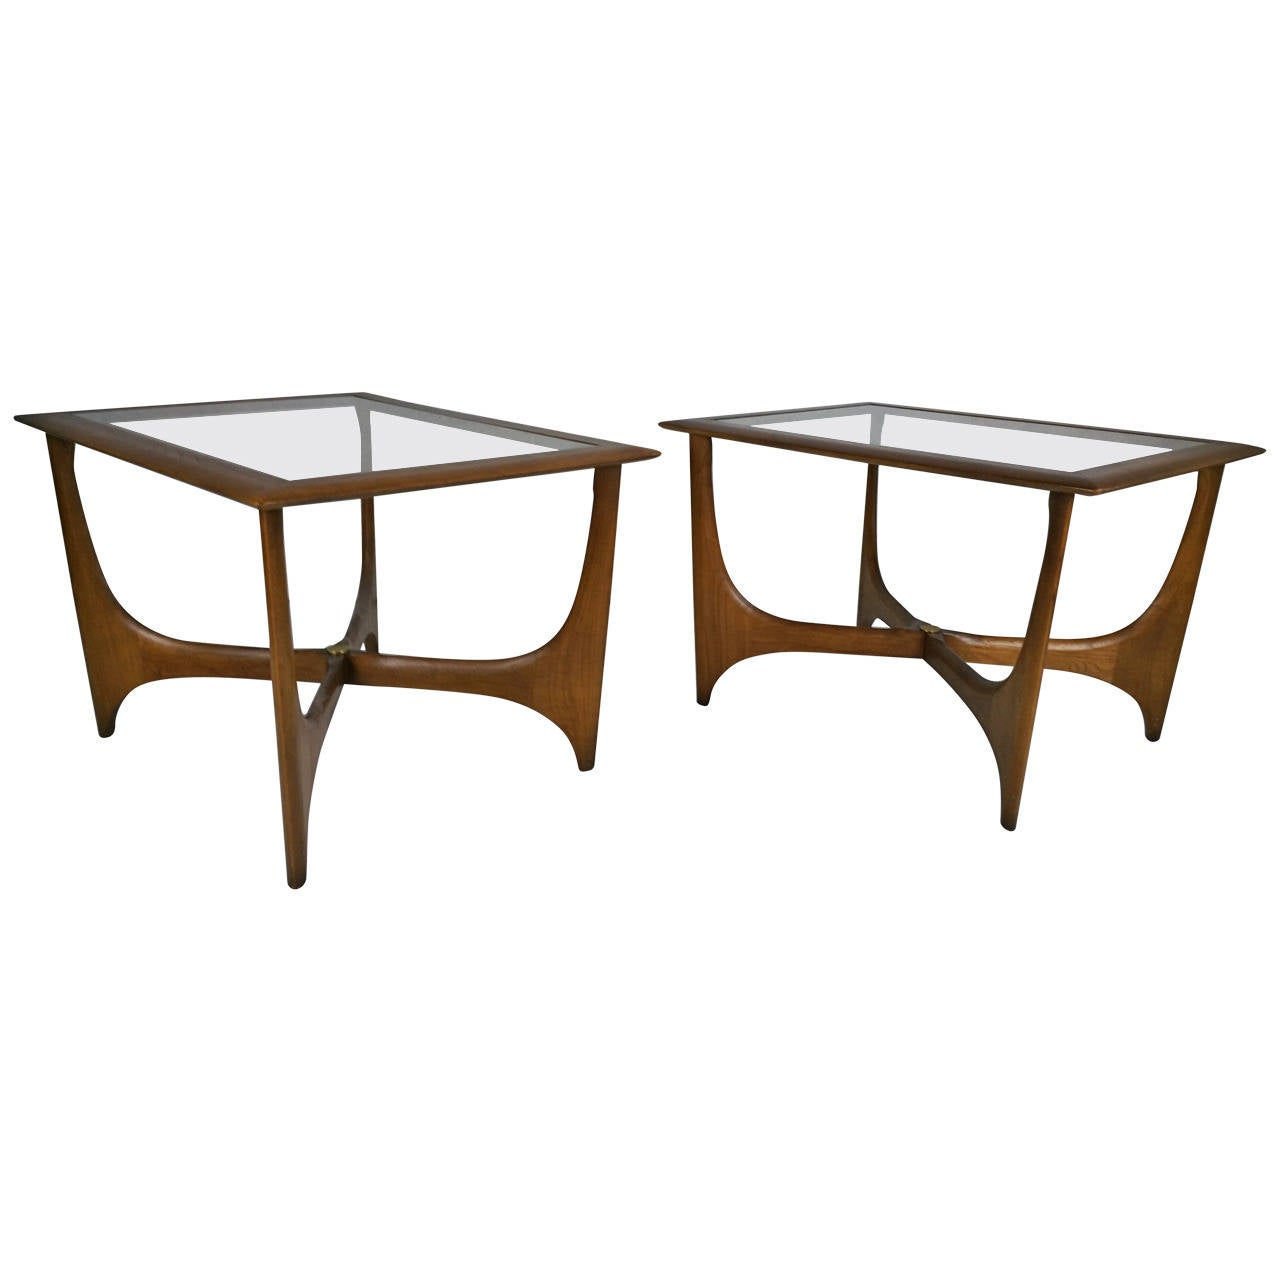 pair of midcentury modern walnut and glass side tables made by  - pair of midcentury modern walnut and glass side tables made by lane